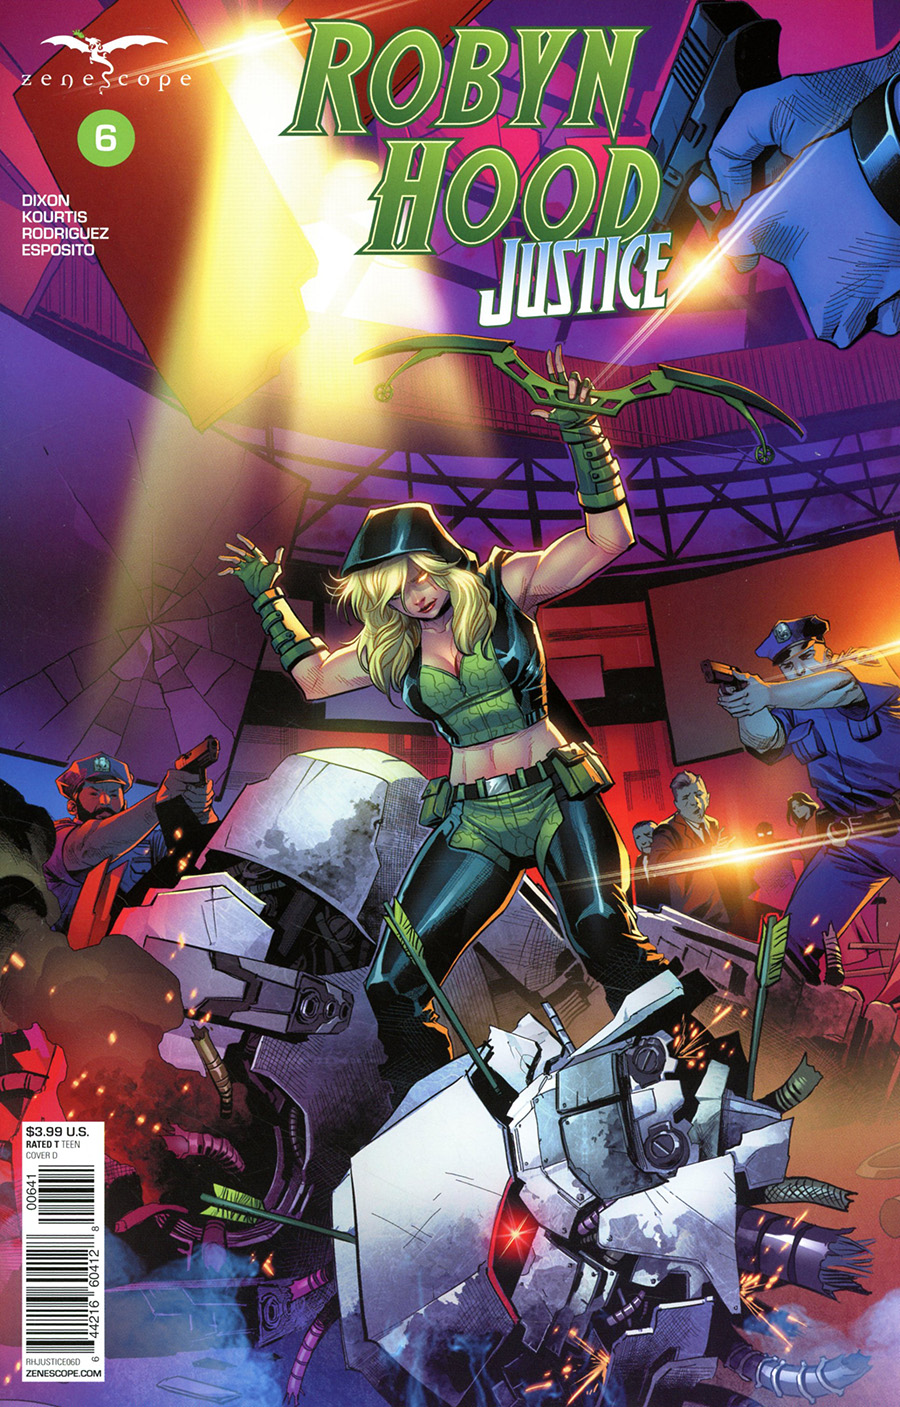 Grimm Fairy Tales Presents Robyn Hood Justice #6 Cover D Martin Coccolo